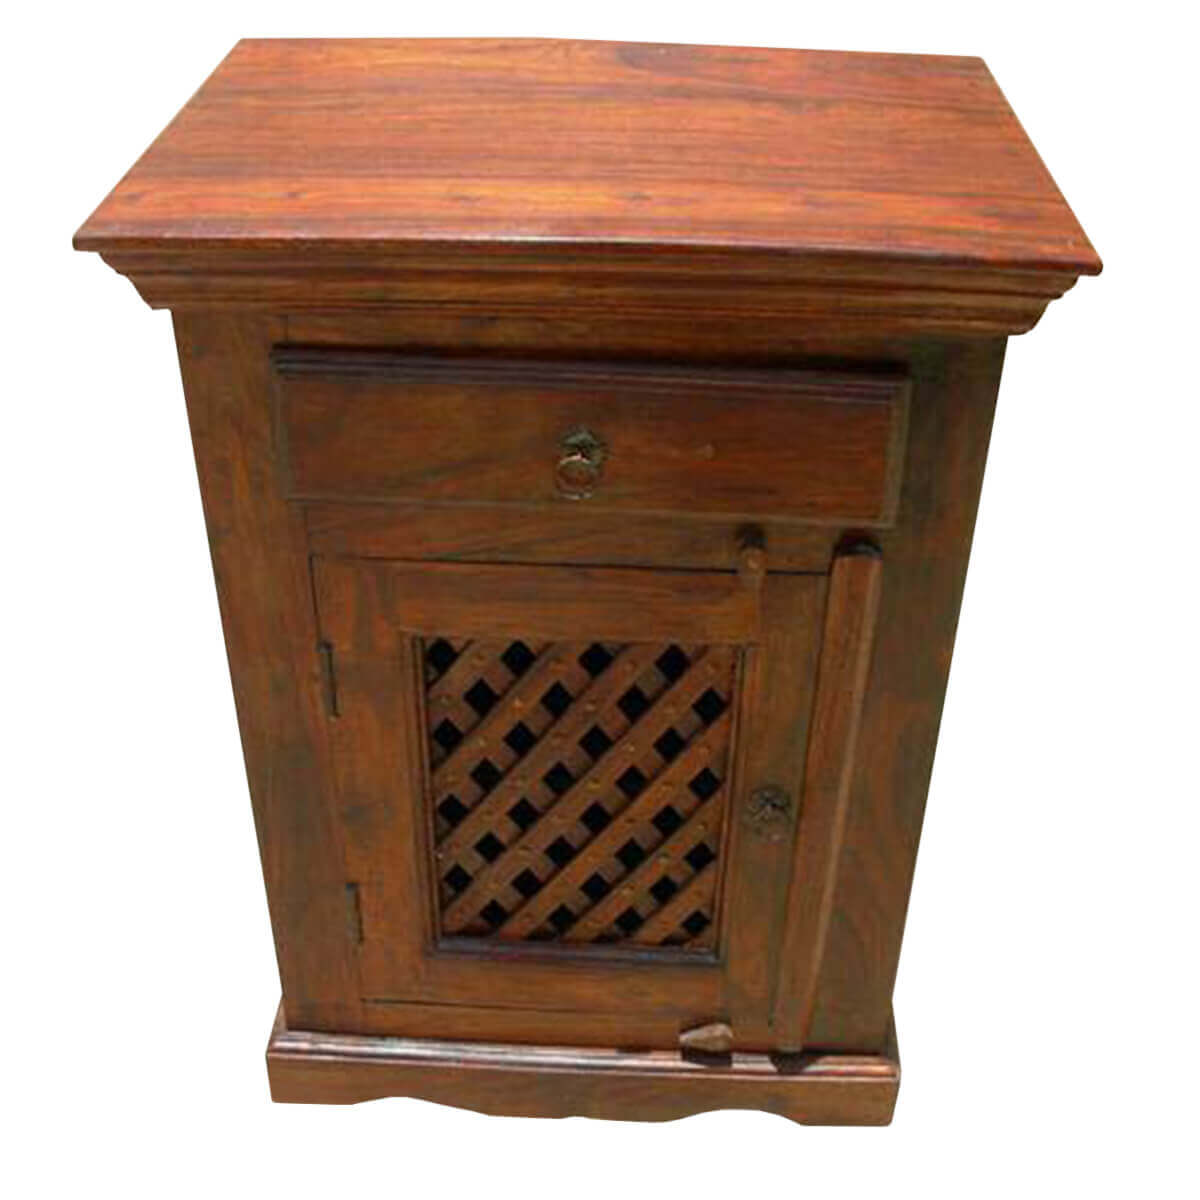 Wood Side Tables With Storage ~ Solid bed side end storage table cabinet wood lattice